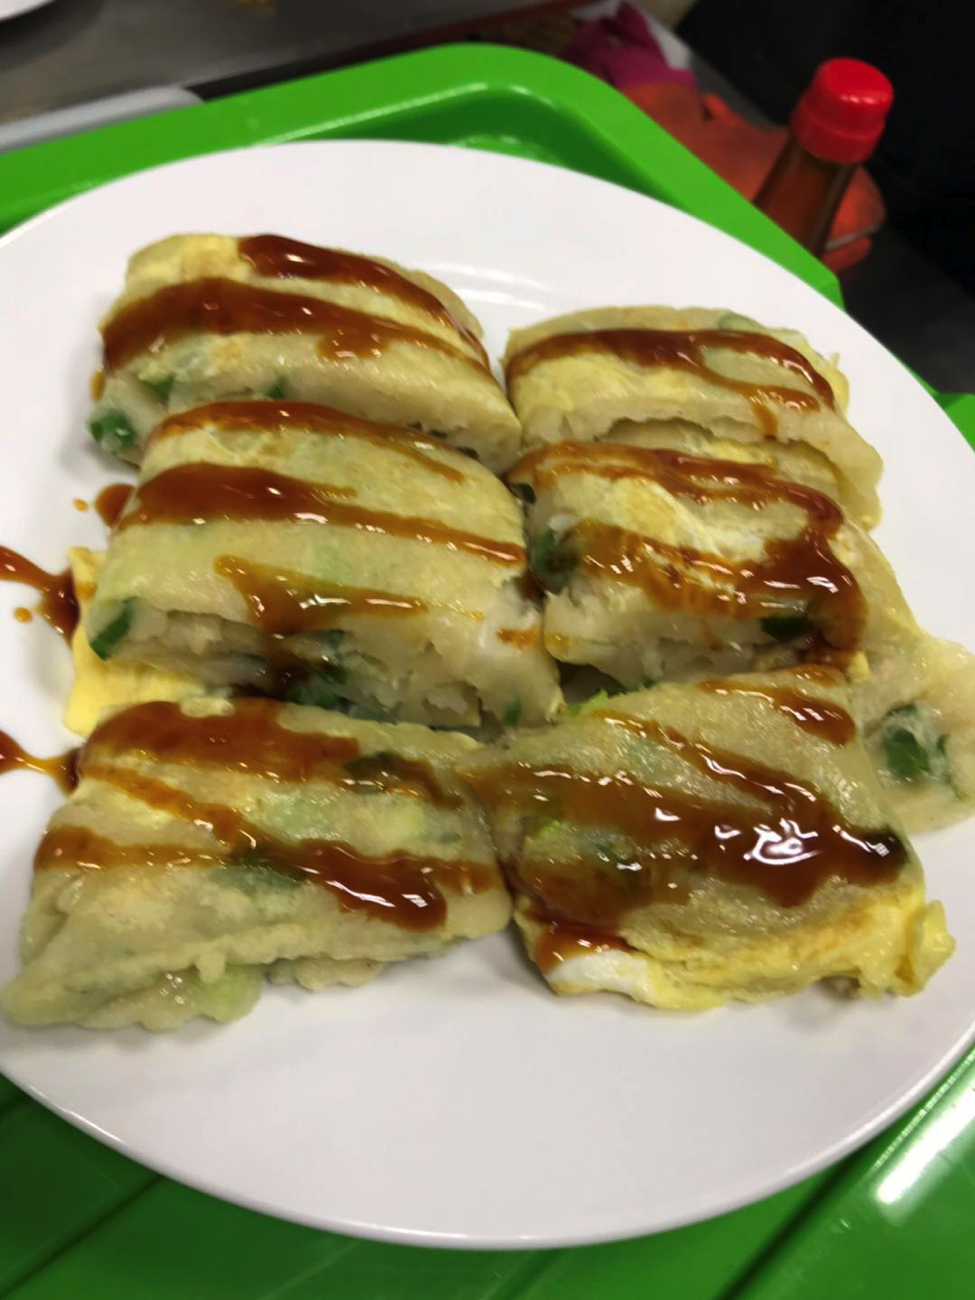 This is a photo of a Taiwanese Traditional Breakfast: Chinese Omelet.